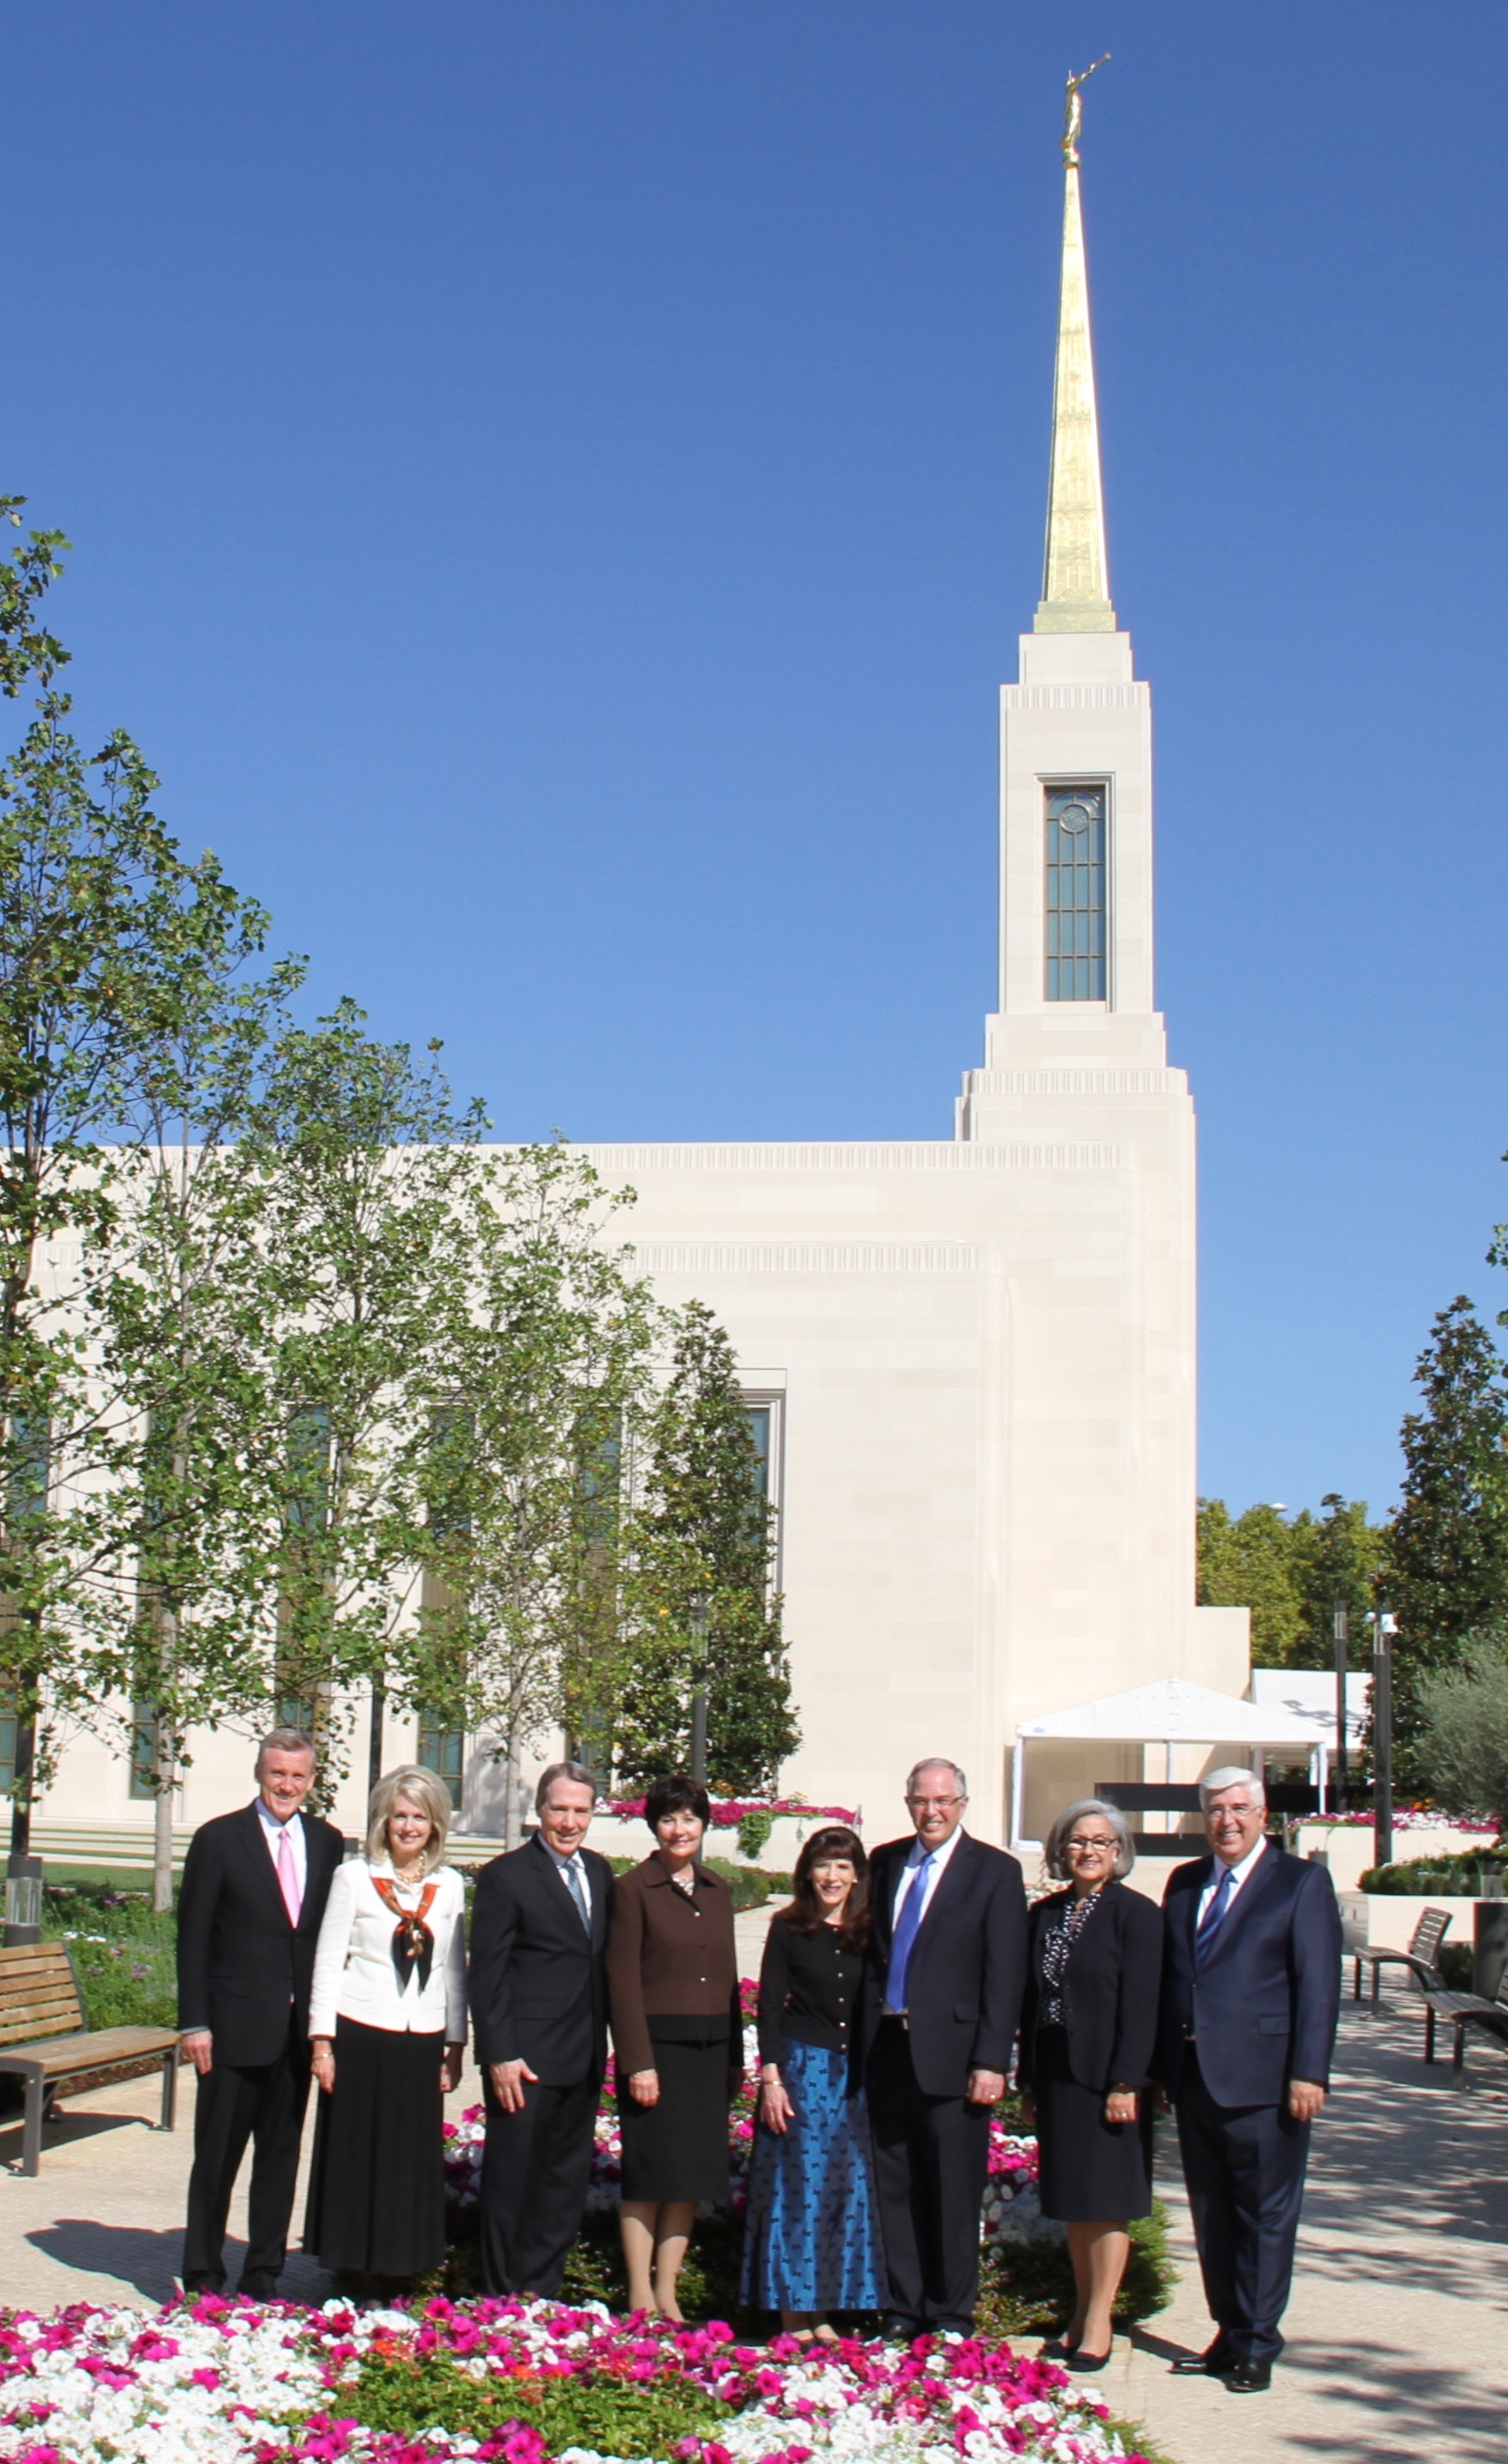 Posing for a photo outside the Lisbon Portugal Temple on Saturday, Sept. 14, 2019, are (from left to right): Elder Kevin R. Duncan, Sister Nancy Duncan, Elder Gary B. Sabin, Sister Valerie Sabin, Sister Kathy Andersen, Elder Neil L. Andersen, Sister Filomena Teixeira and Elder José A. Teixeira.